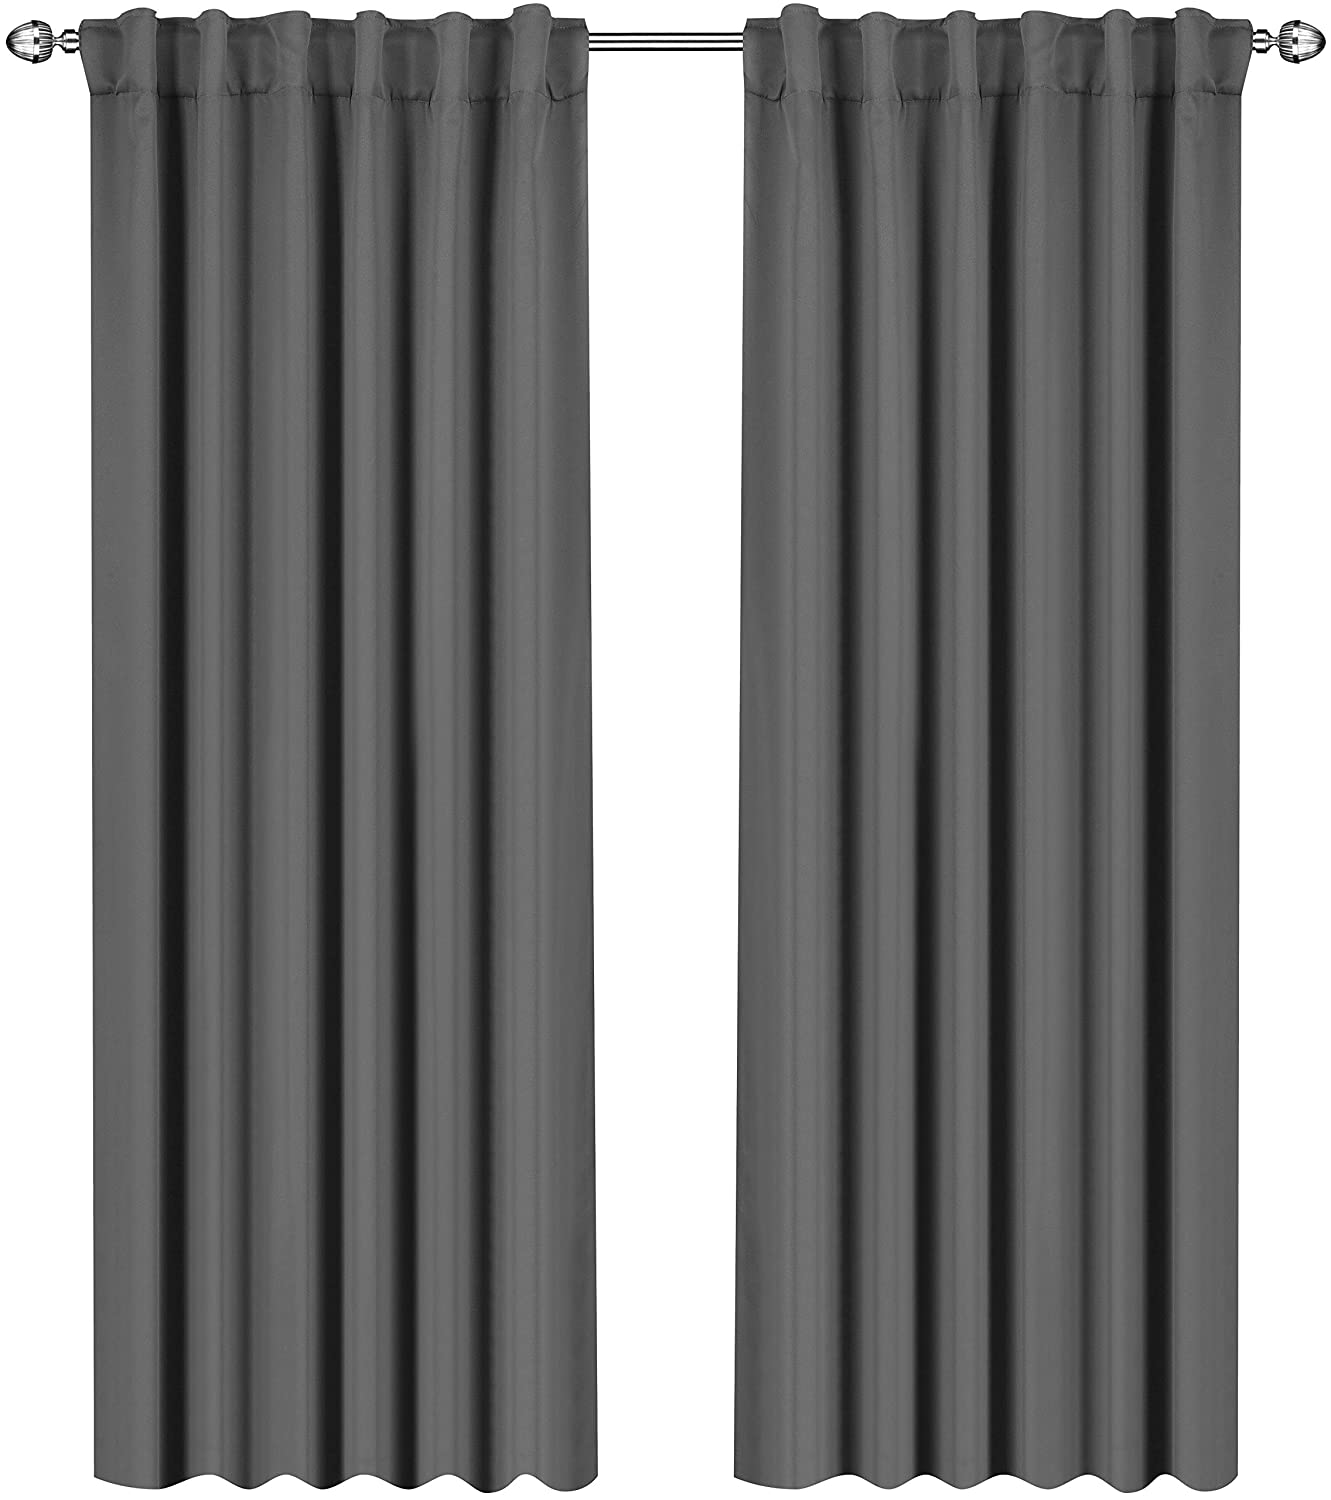 Utopia Bedding Blackout Room Darkening Curtains Window Panel Drapes Grey - 2 Panel Set 52x84 Inch